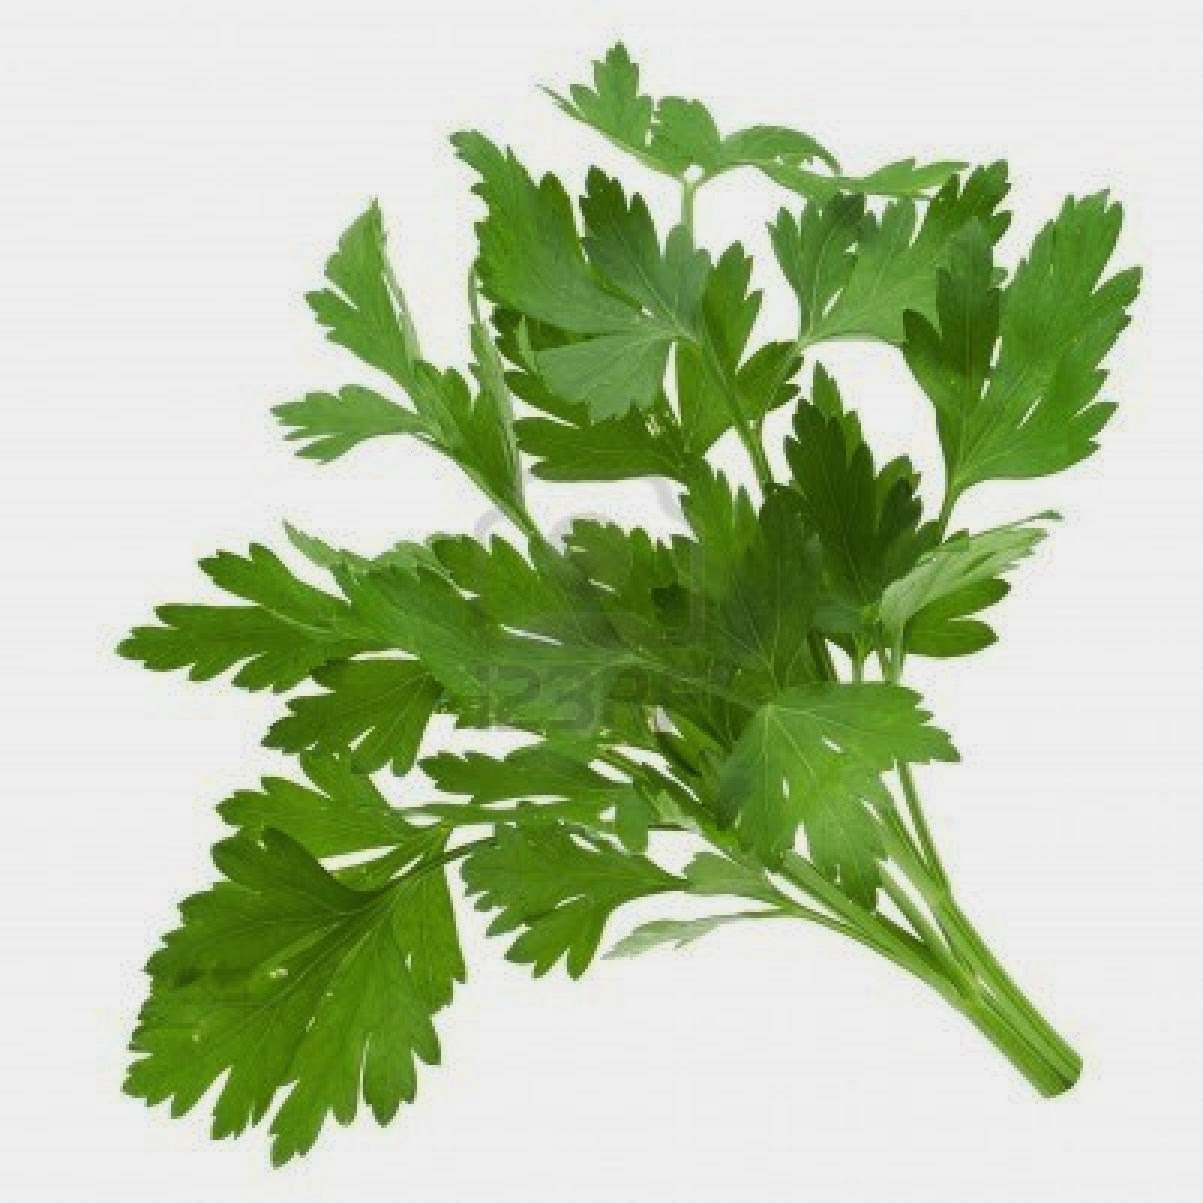 The Herb Hound: PARSLEY